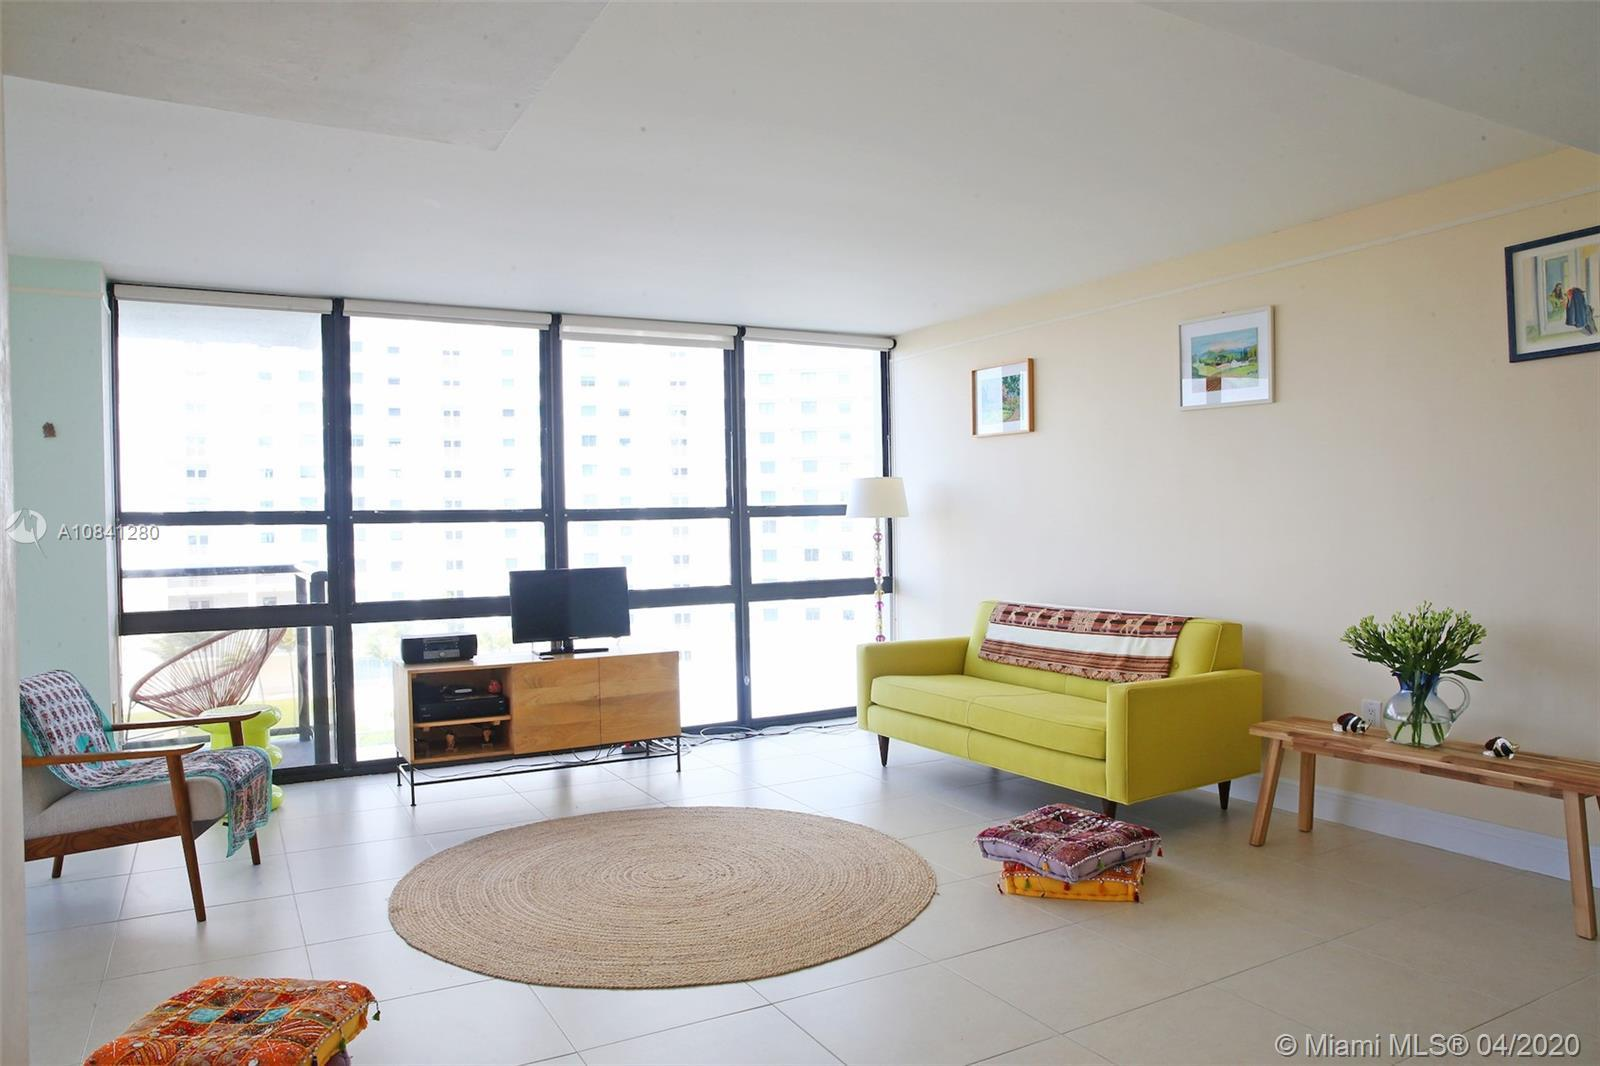 Spacious and open-plan 1 bedroom, 2 full-bathroom corner-unit condo at The Charter Club. A waterfron